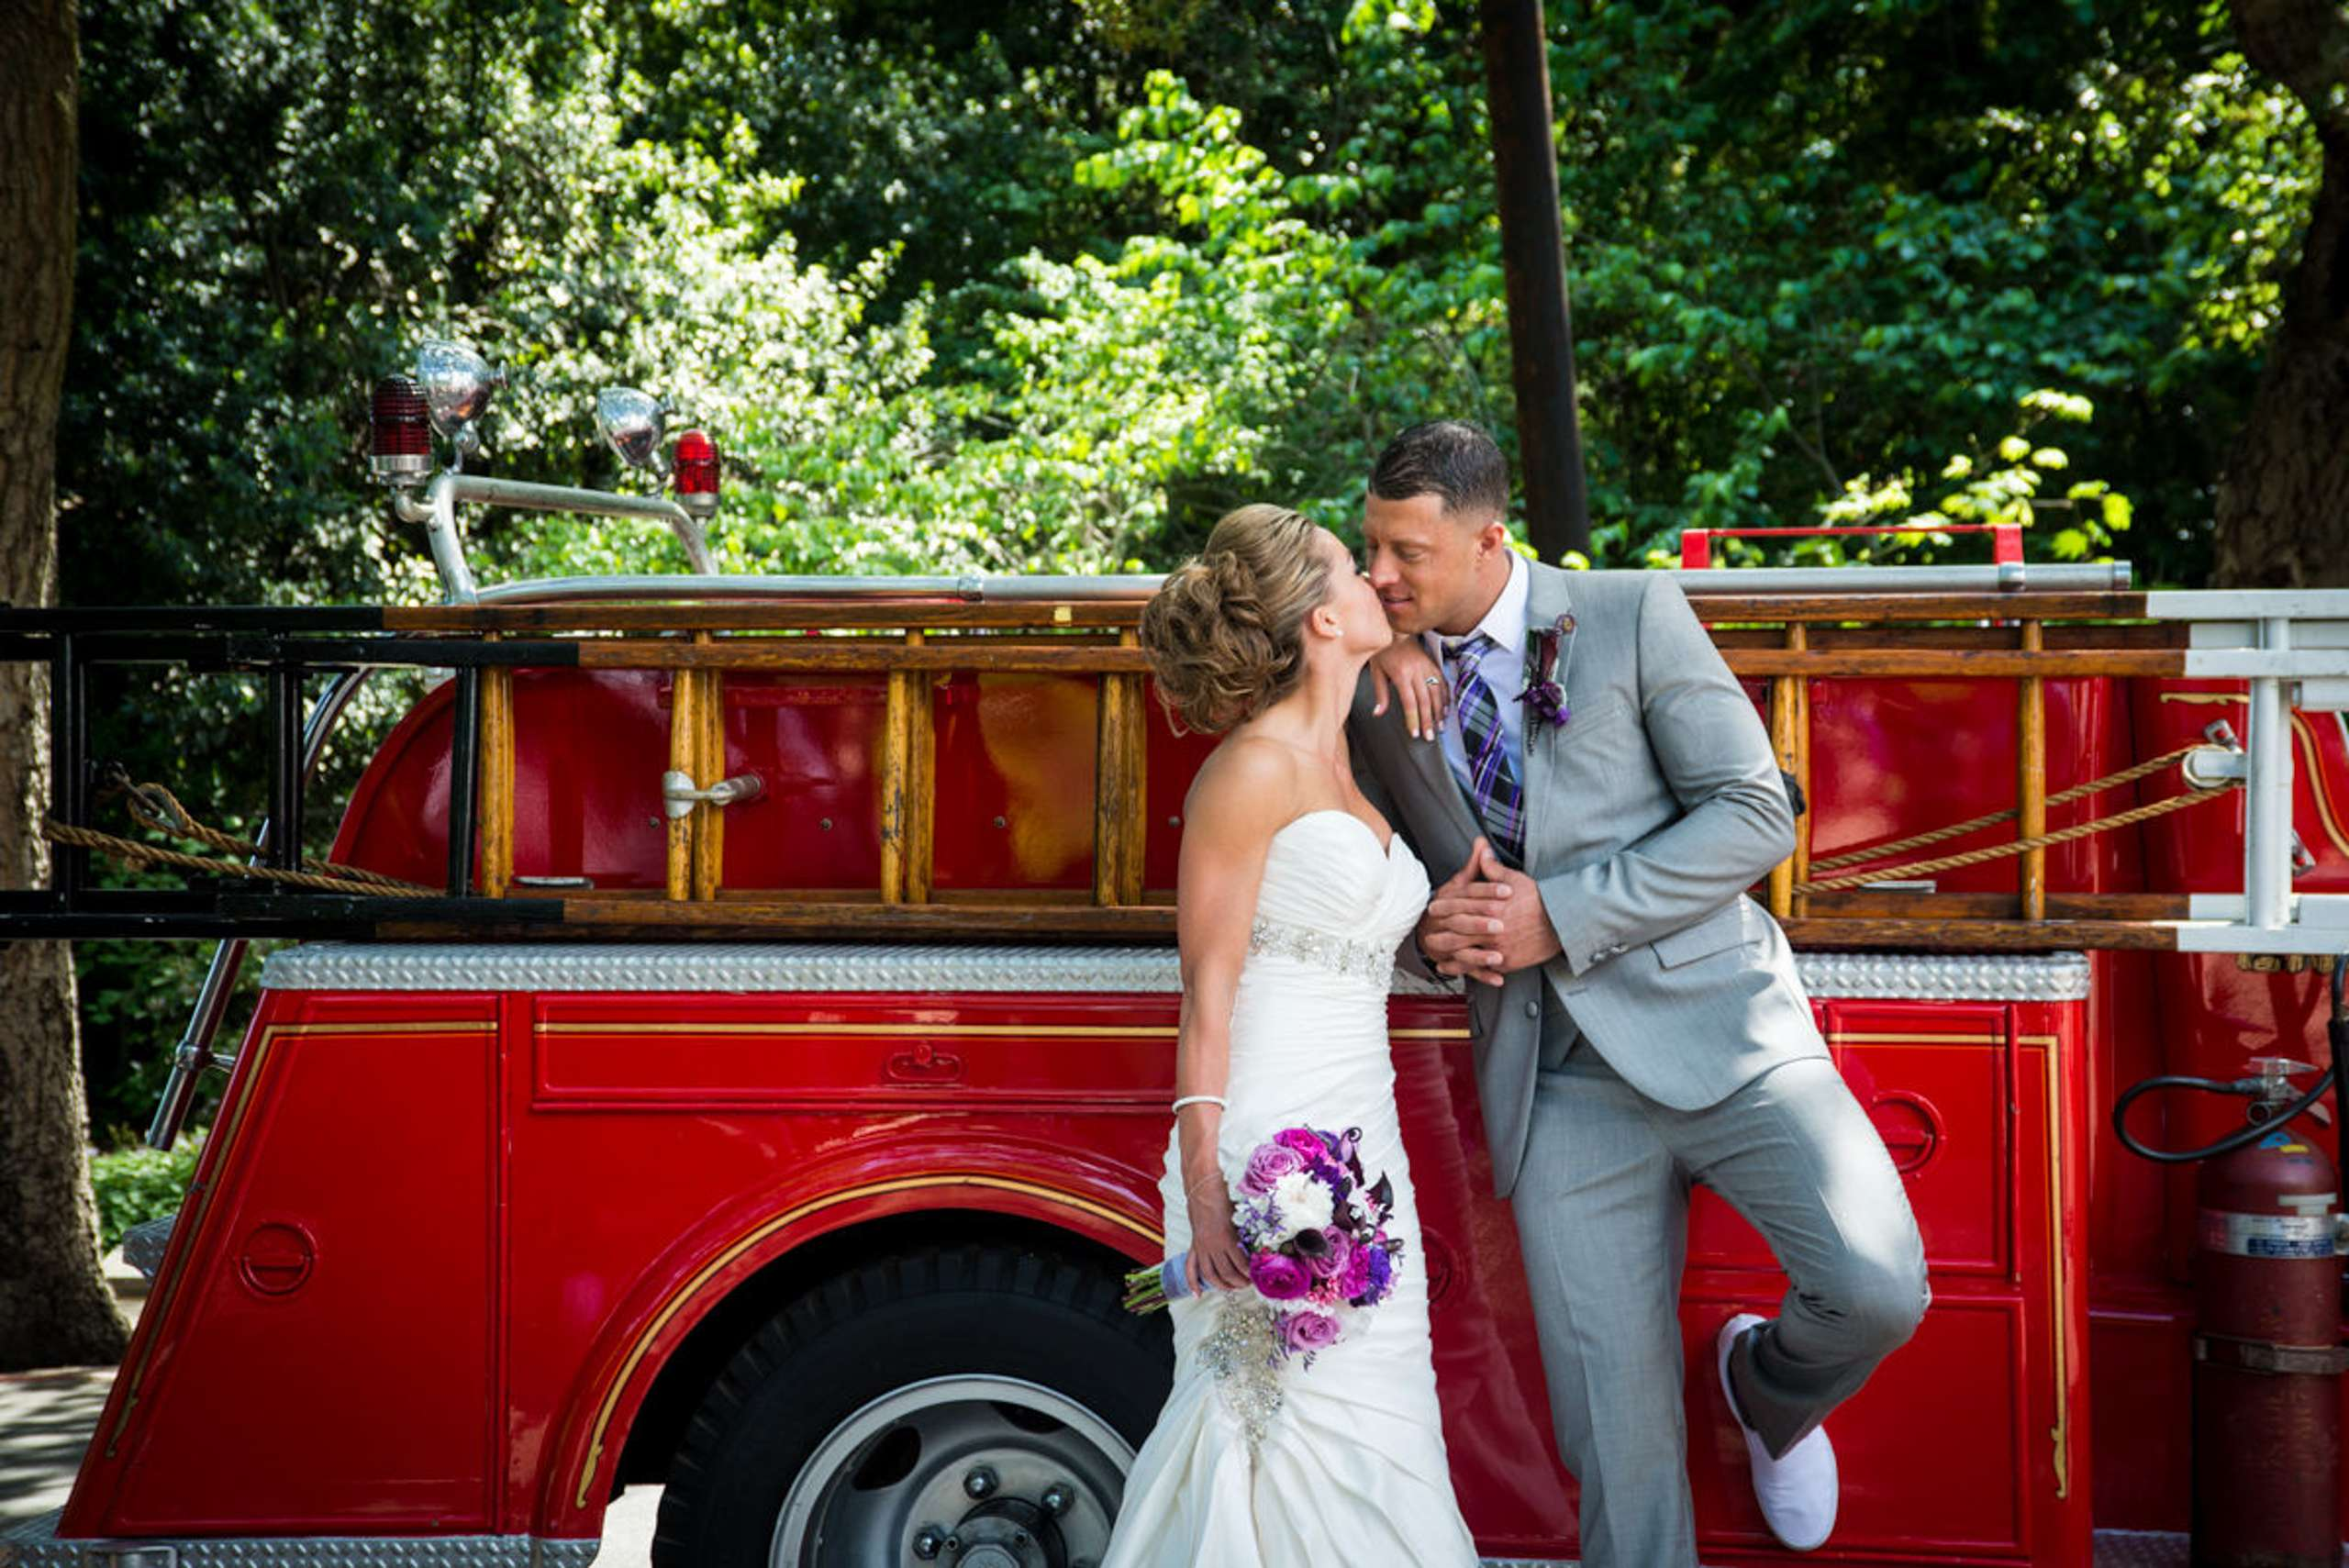 Fireman Bride & Groom